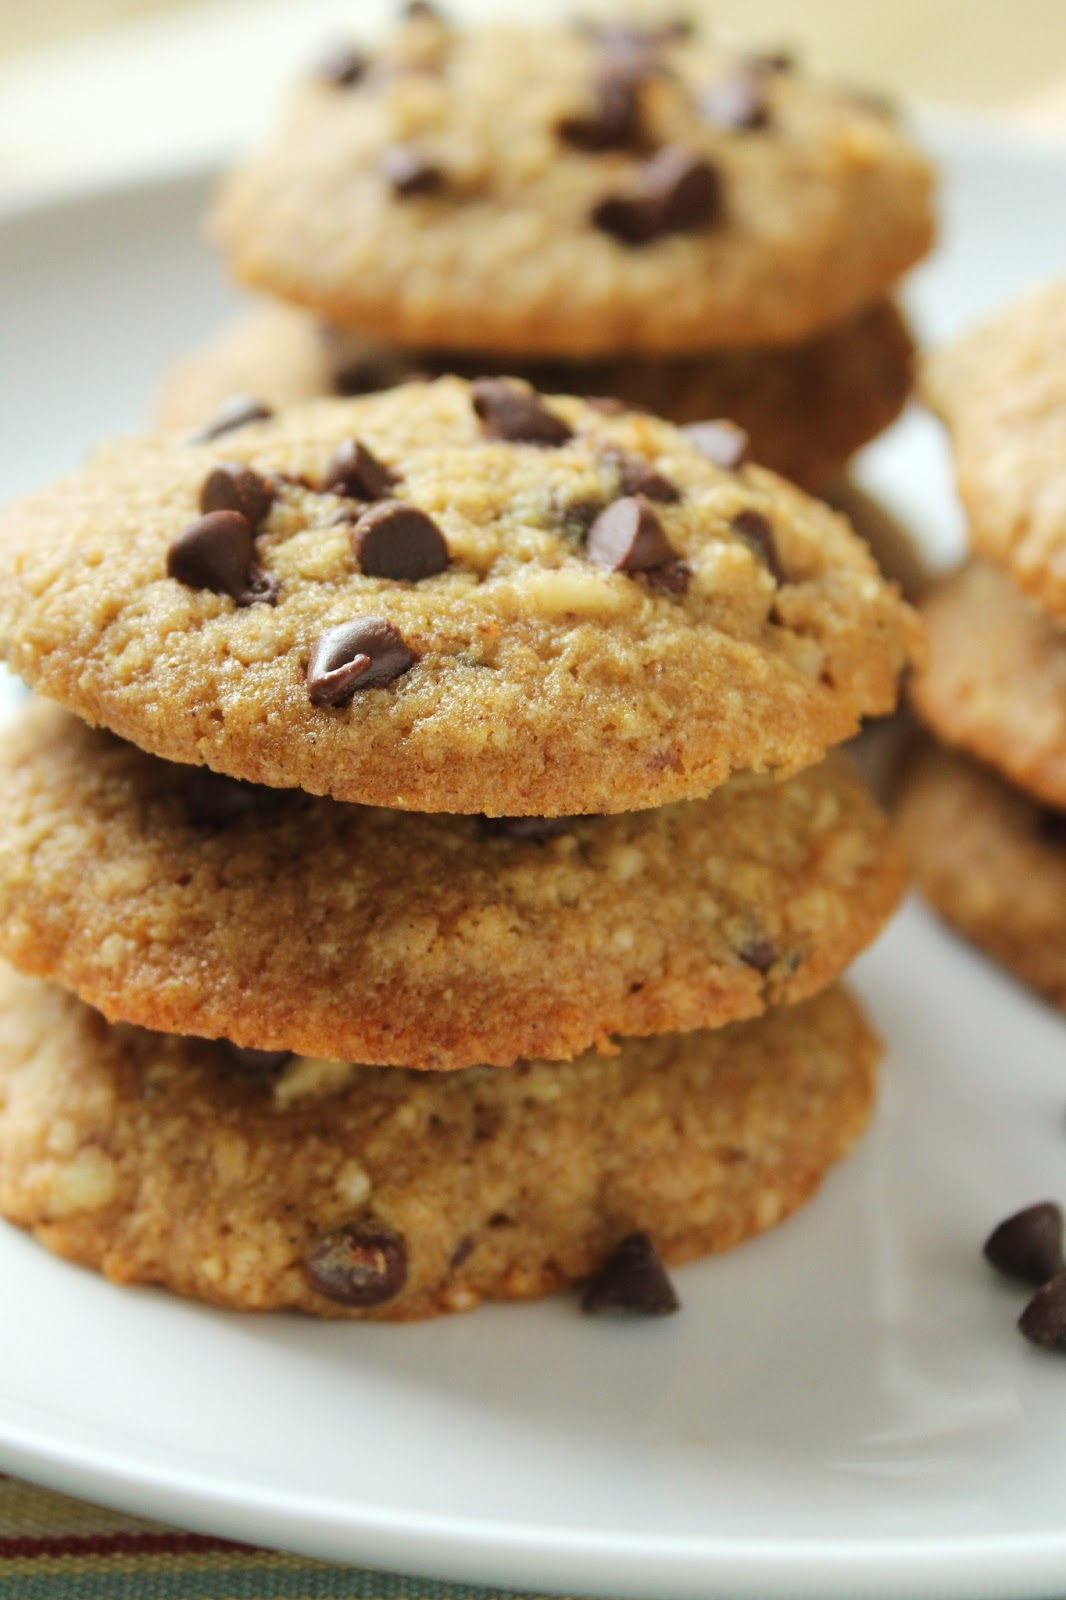 Delicious as it Looks: Low-Fructose Chocolate Chip Quinoa Cookies